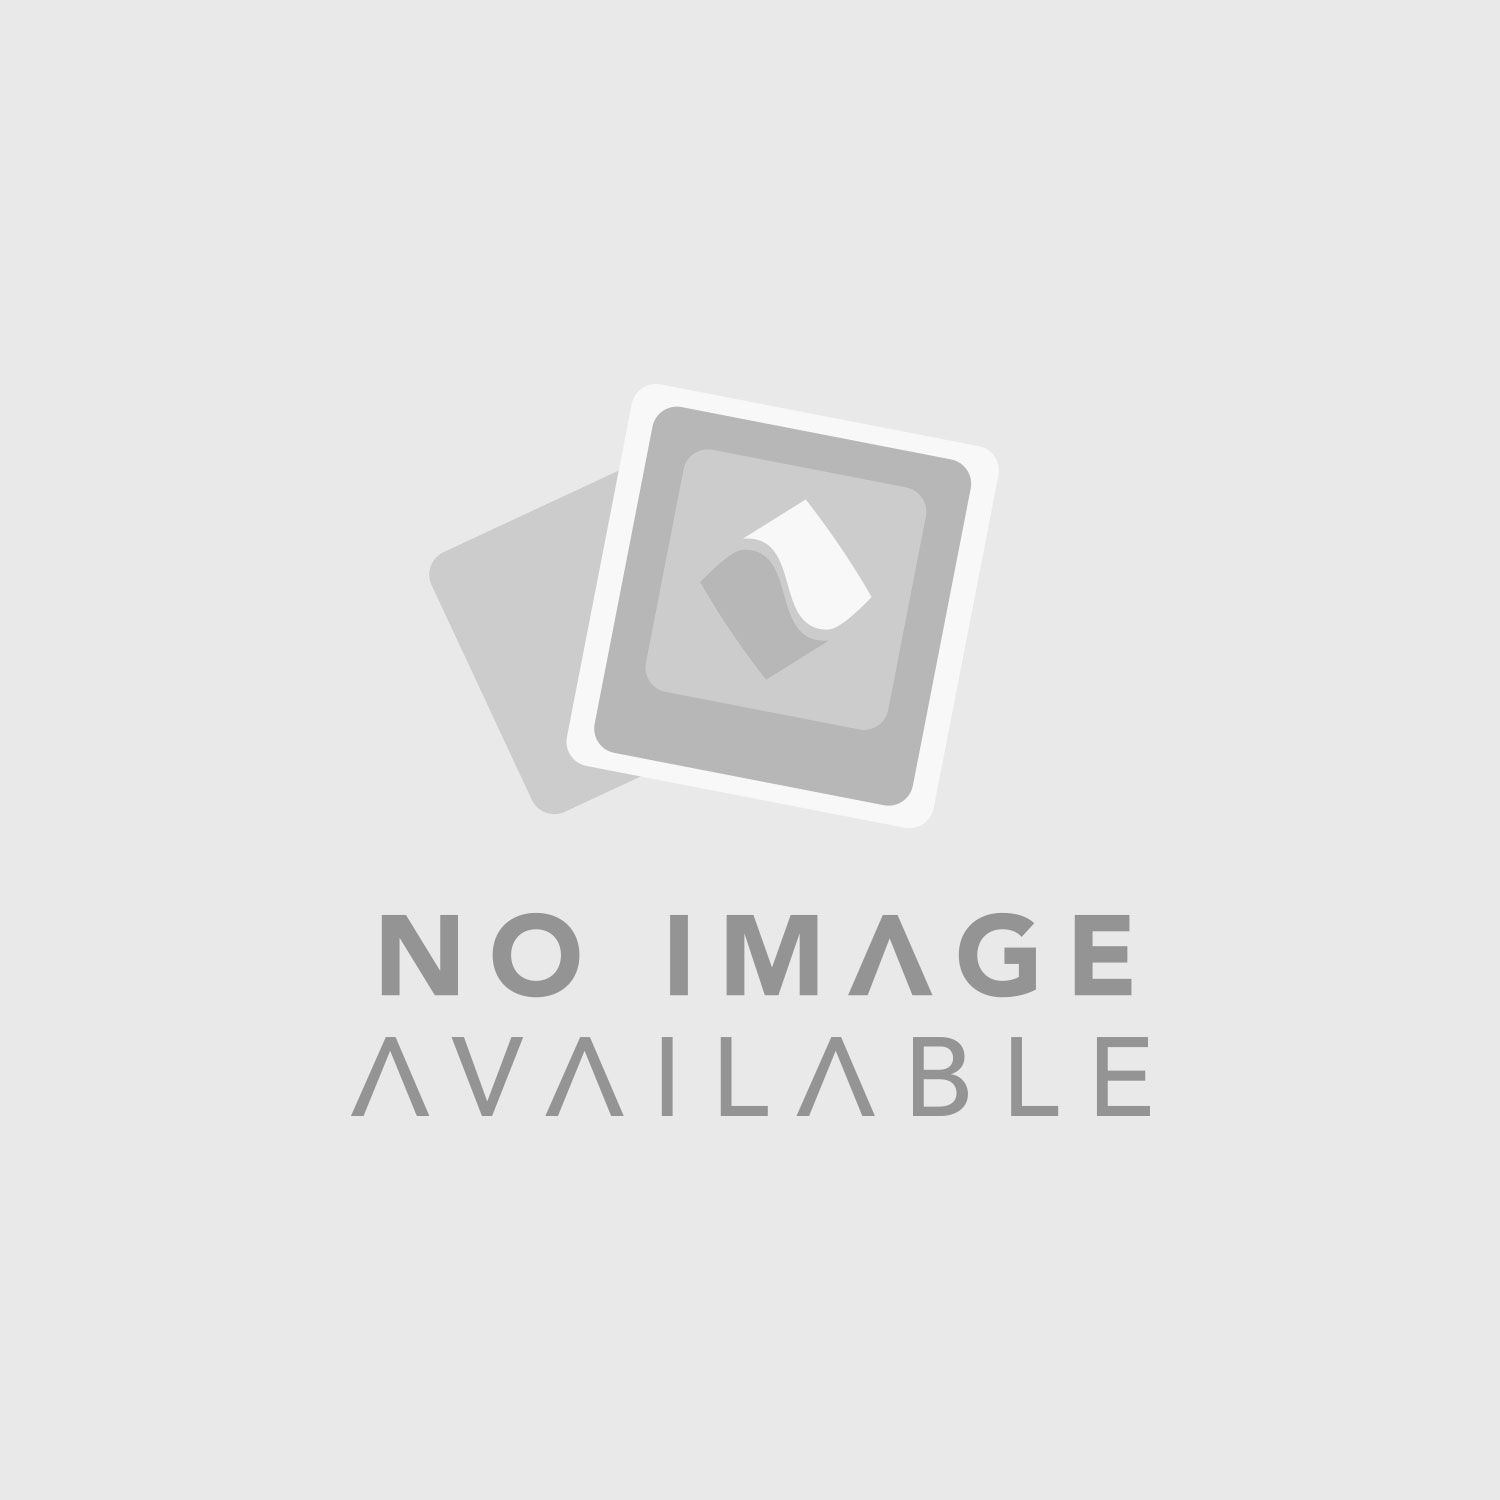 Waves Abbey Road Vinyl Virtual Vinyl Cutting and Playback Plug-In (Download)